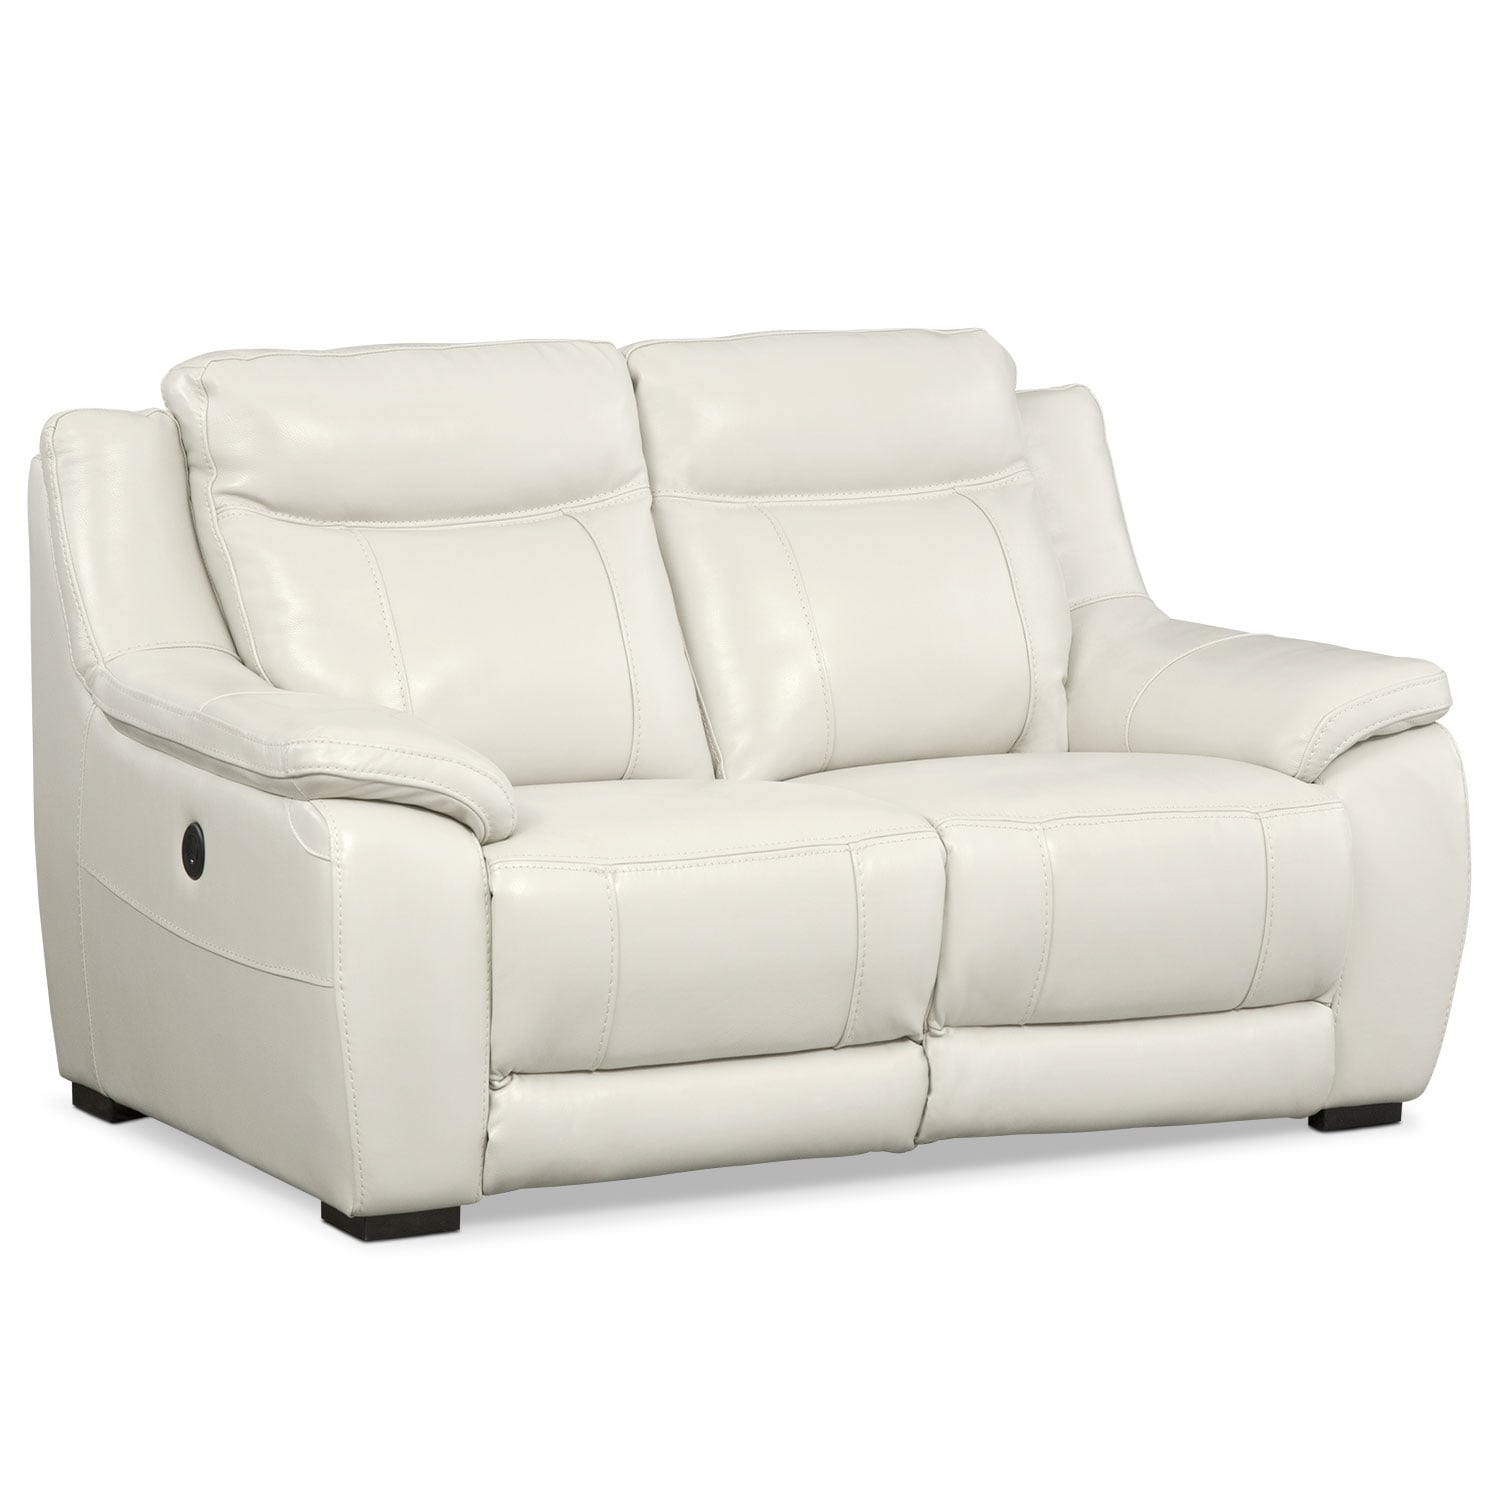 Lido power reclining sofa reclining loveseat and recliner for Couch und sofa